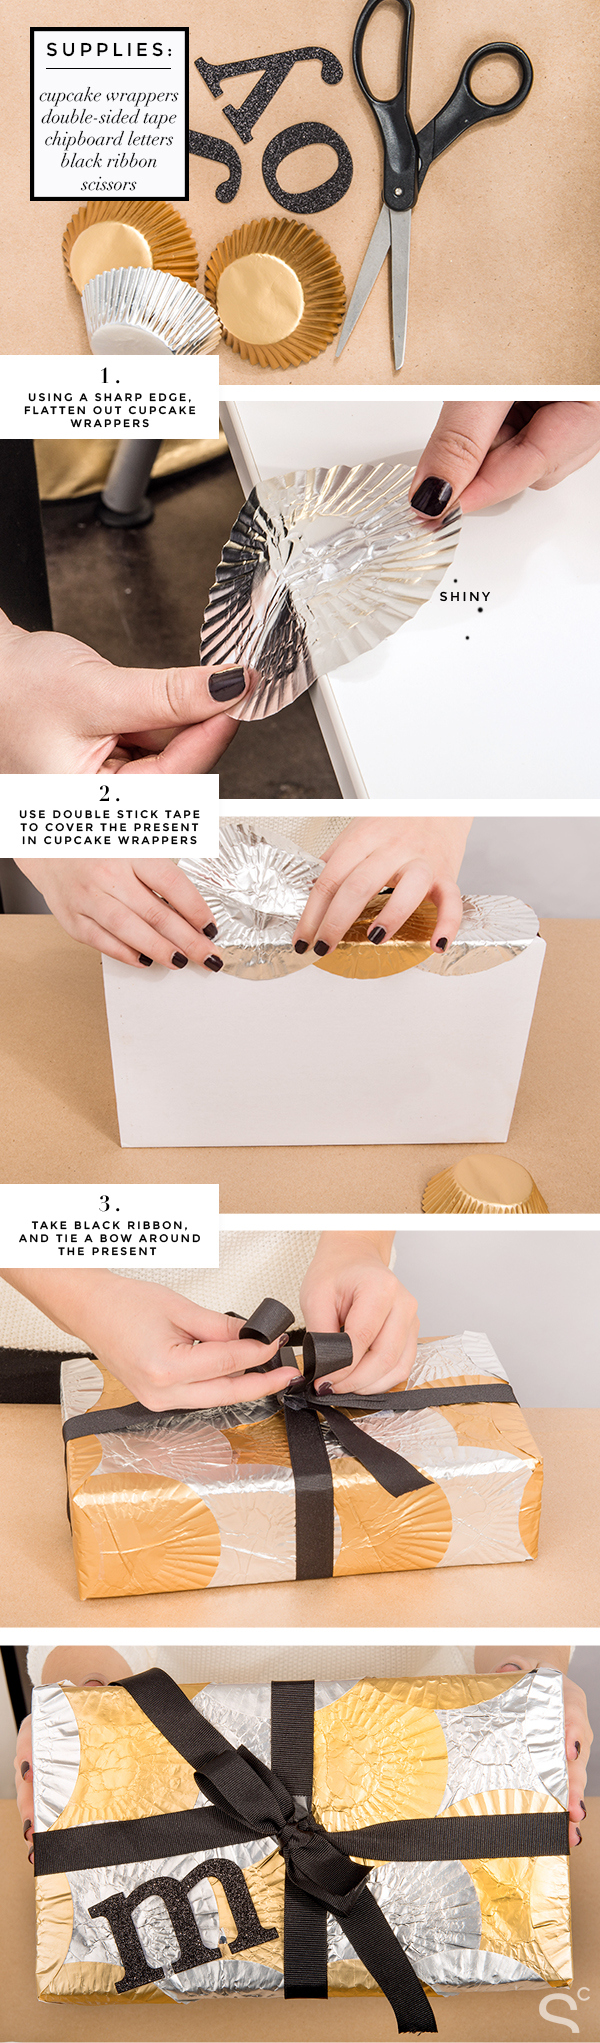 how-to-wrap-a-gift-in-a-unique-creative-way Unique & Adorable Gift Wrapping Ideas